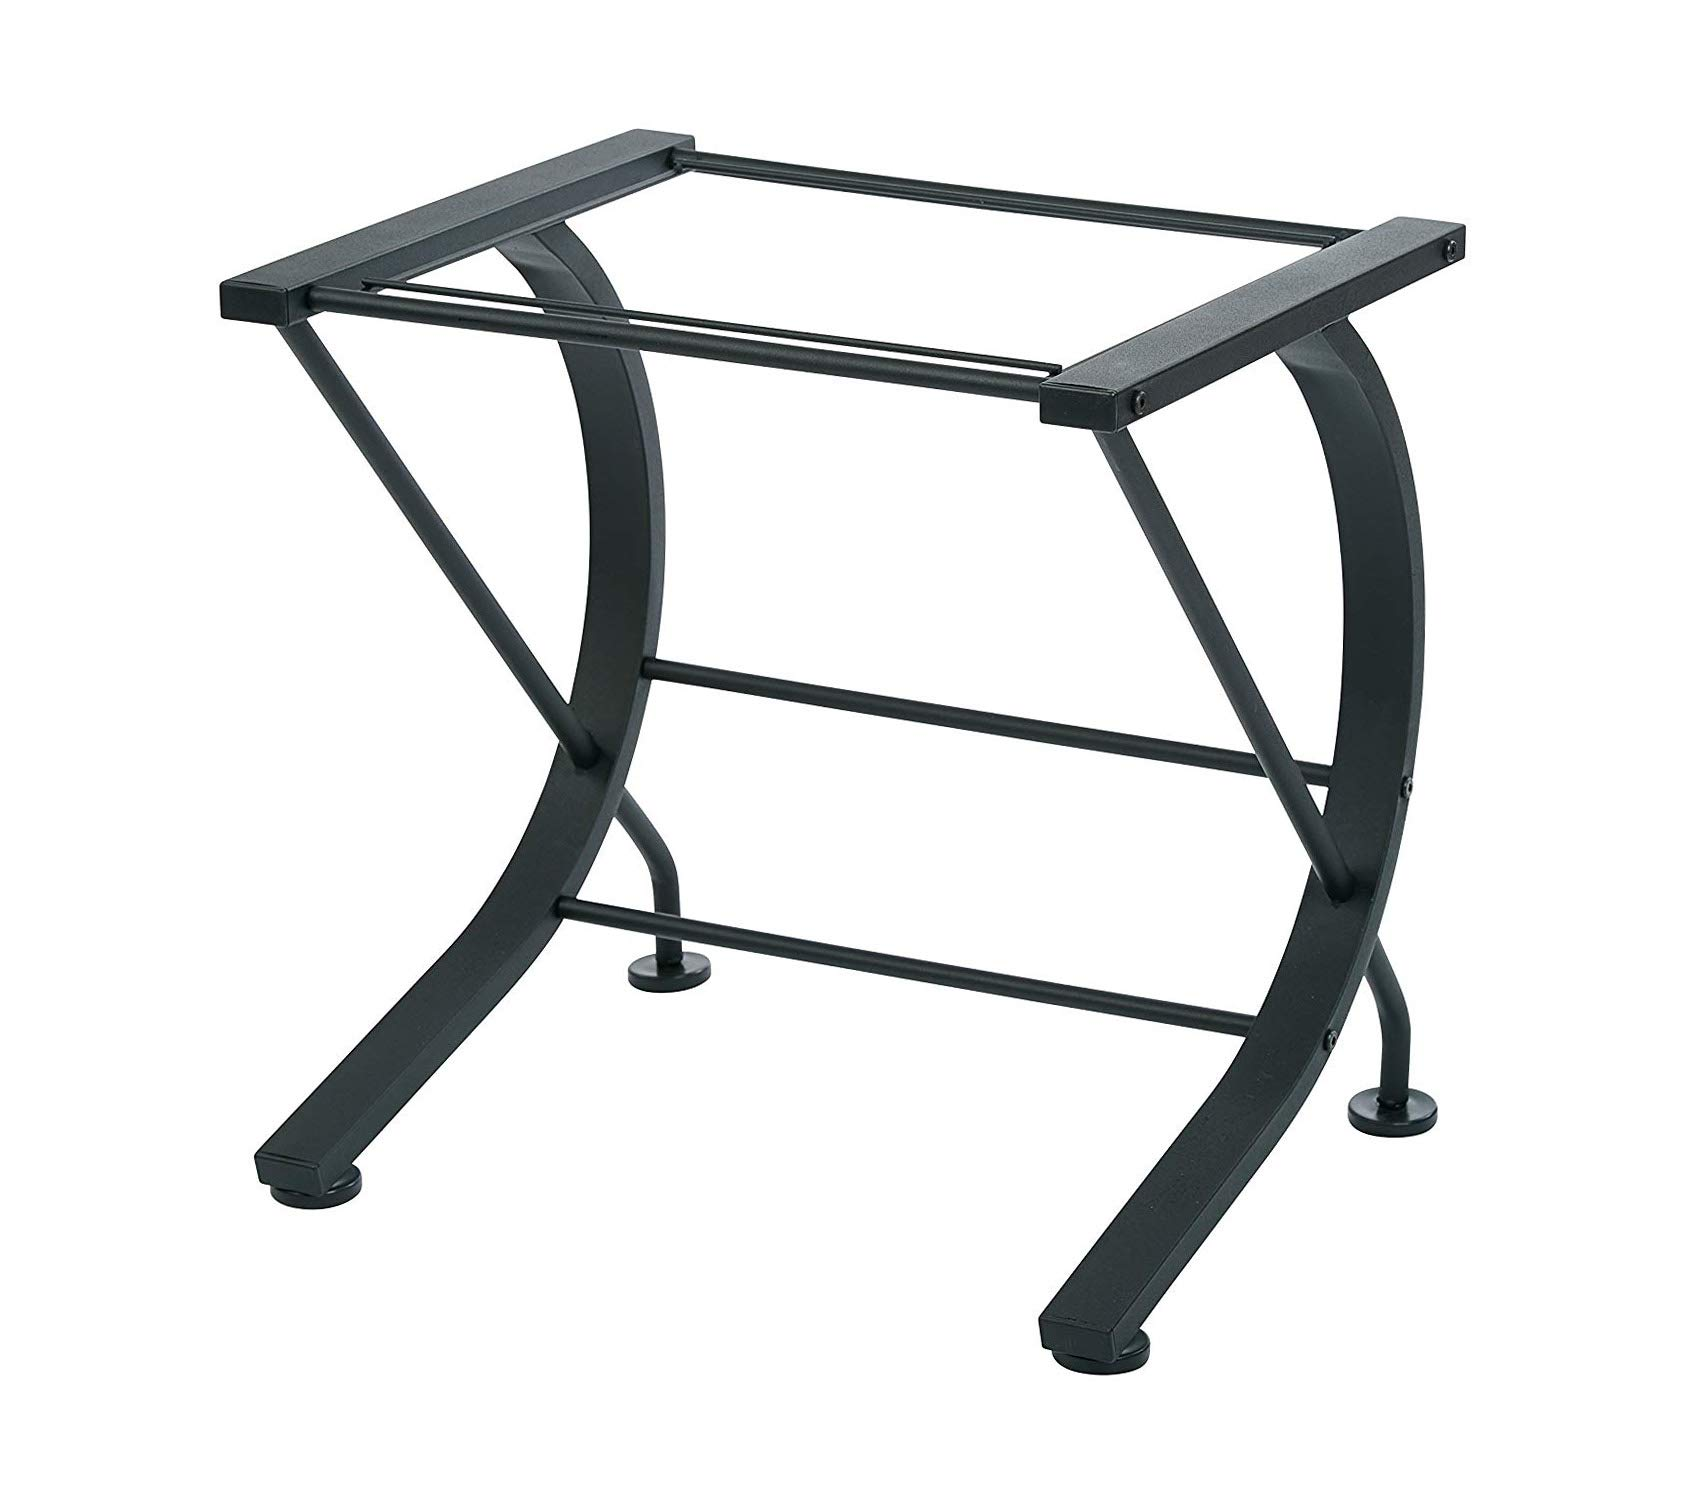 Оsp Dеsigns Horizon File Caddy with Black Powder Coated Metal Frame by Оsp Dеsigns